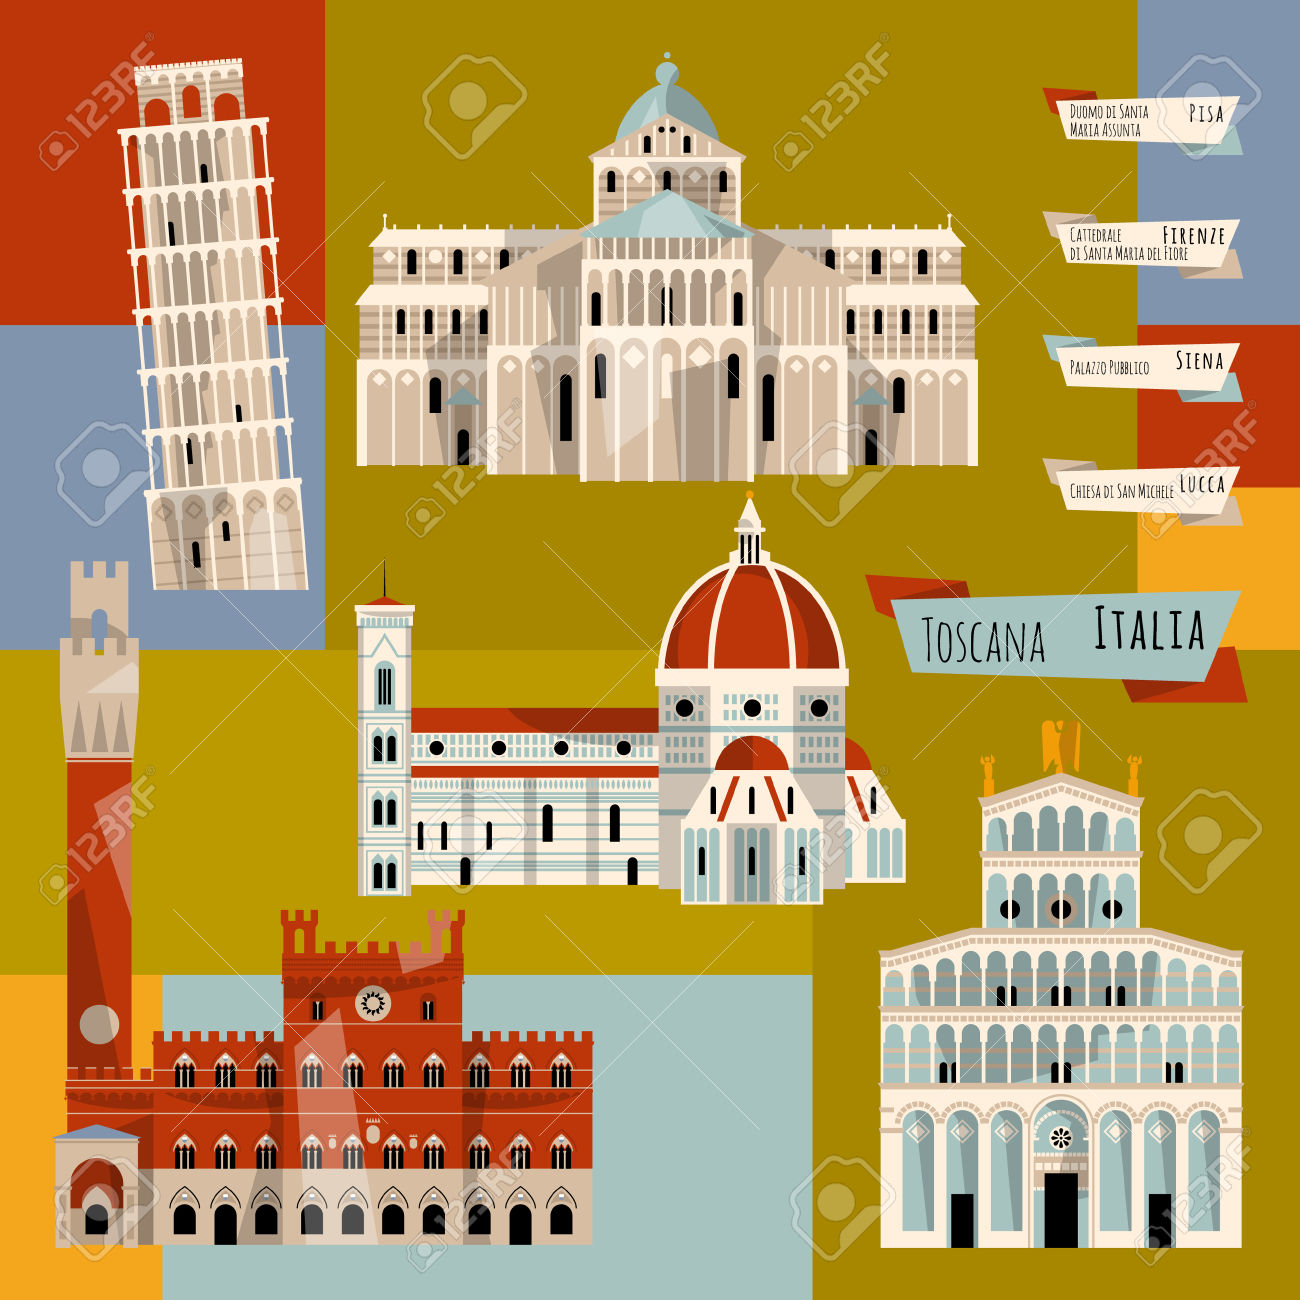 79 Lucca Stock Illustrations, Cliparts And Royalty Free Lucca Vectors.